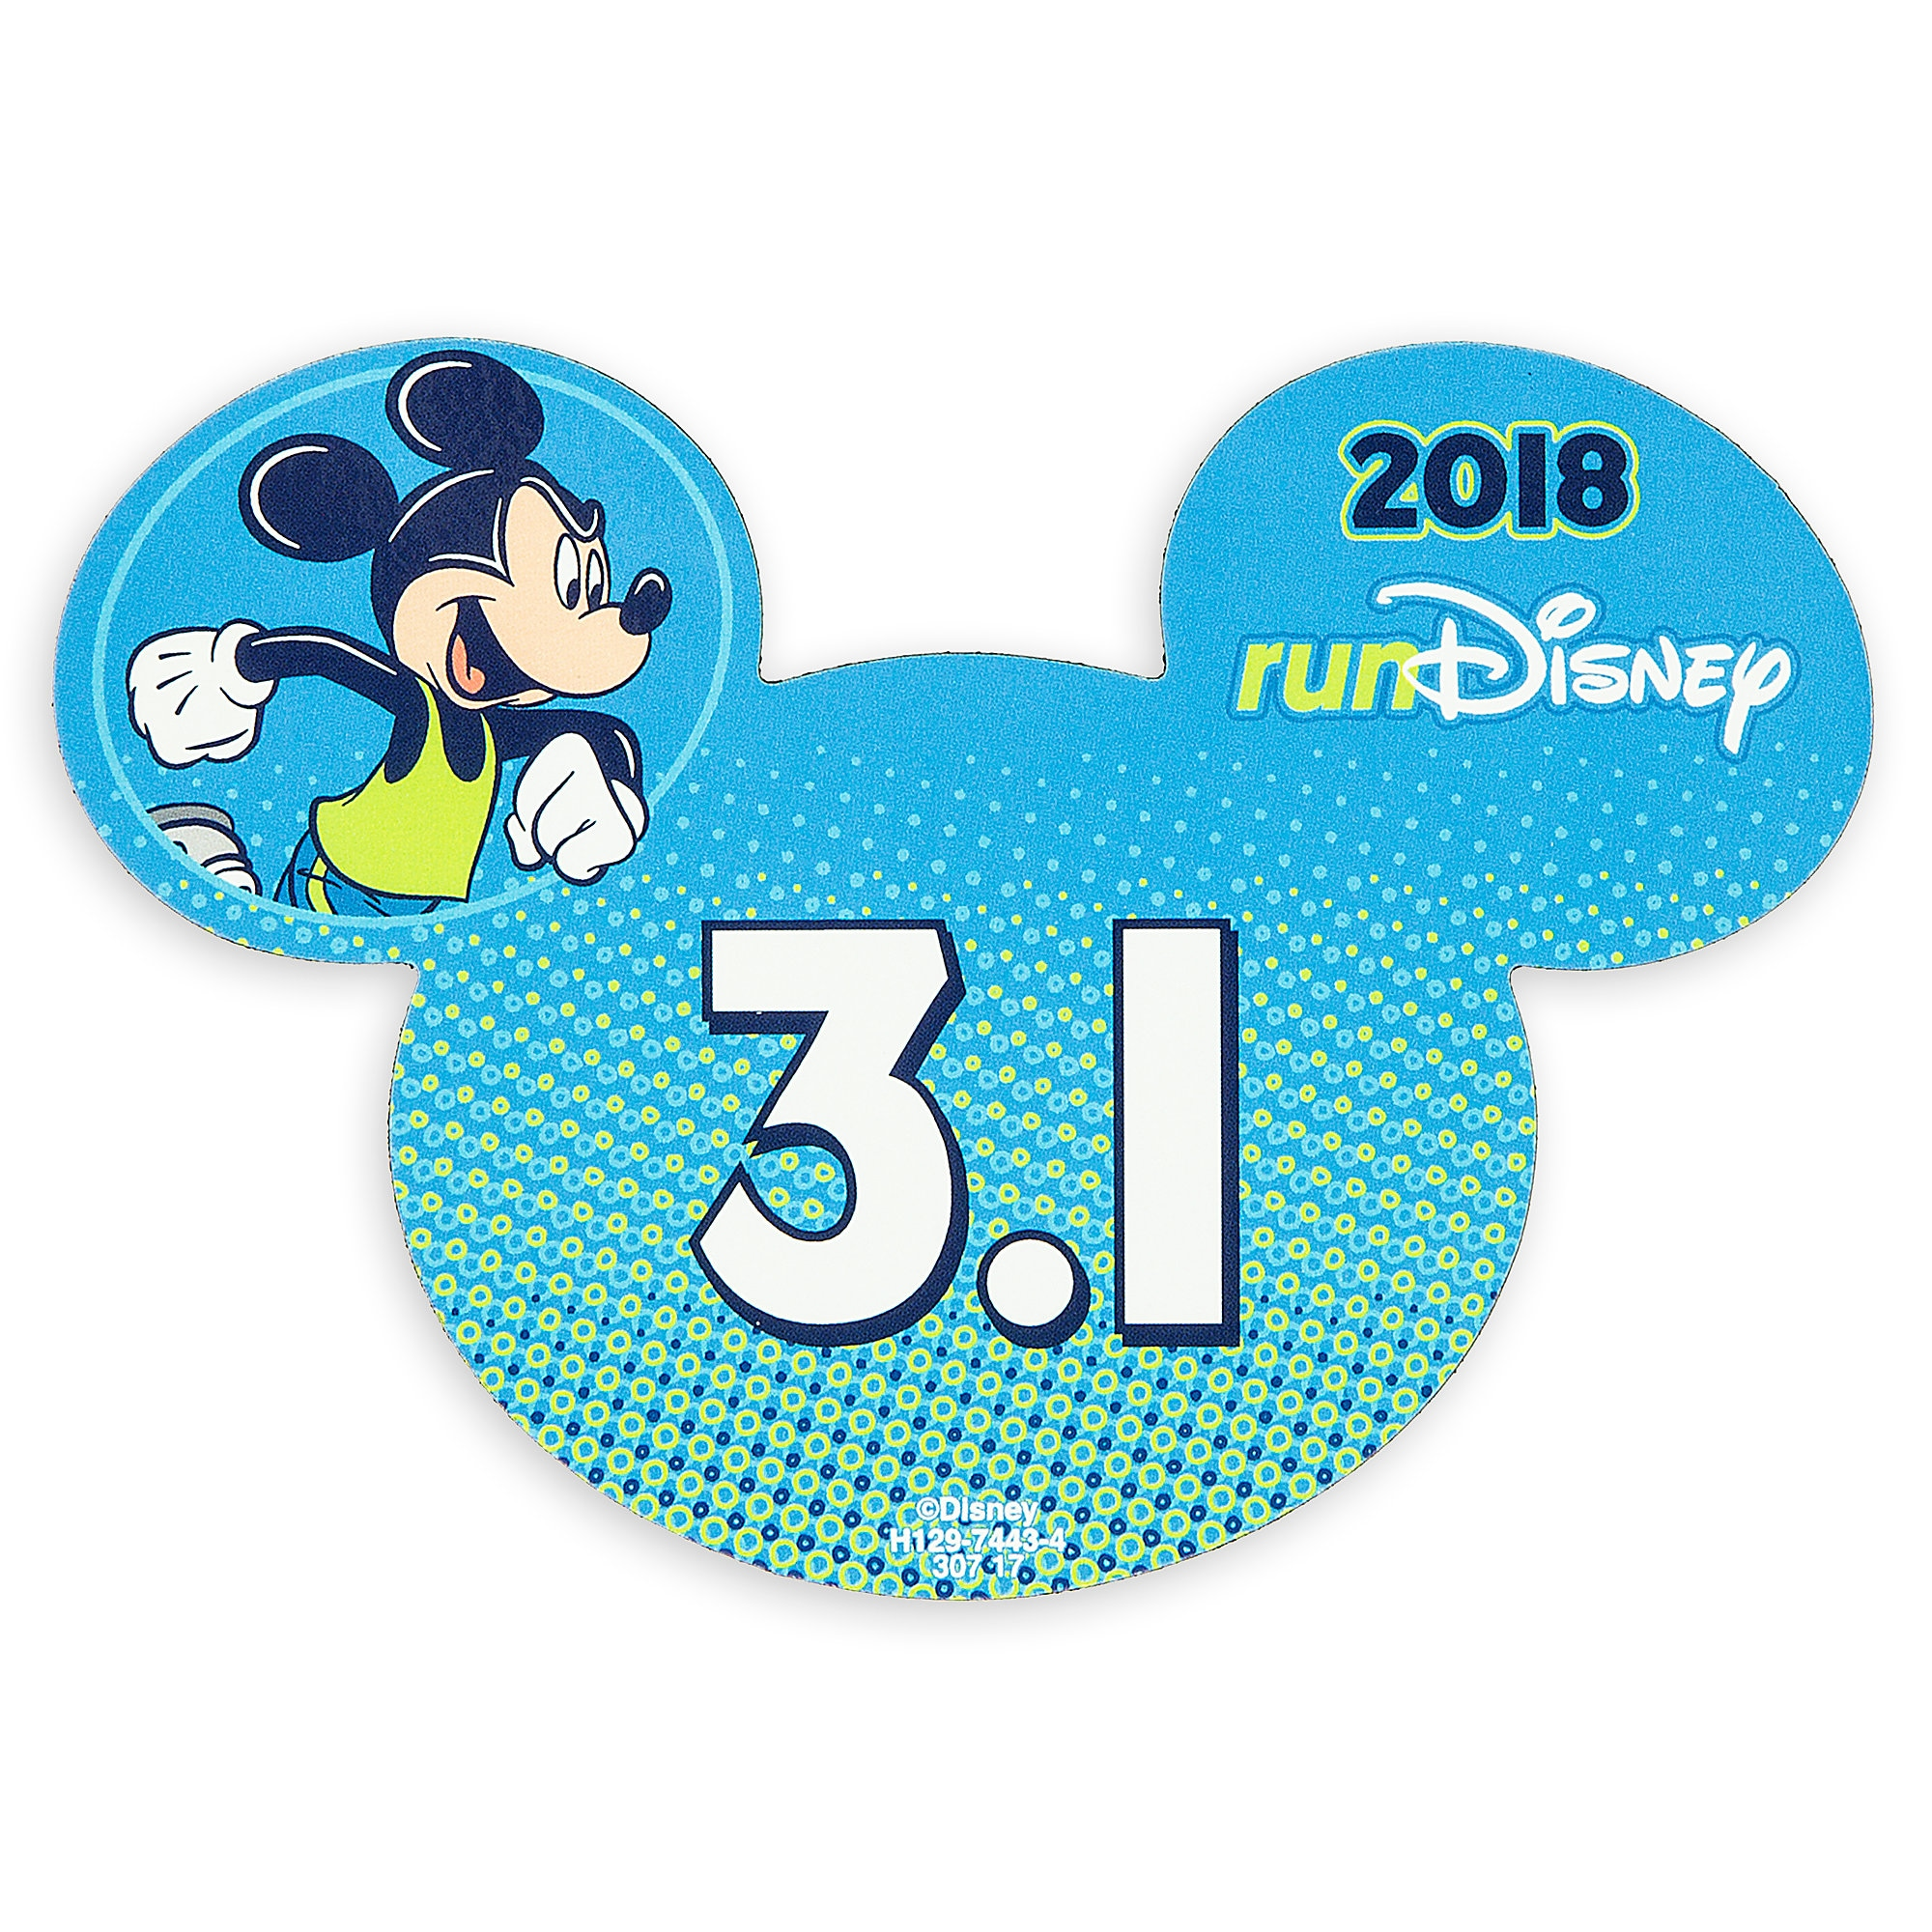 Mickey Mouse runDisney 2018 Magnet - 3.1